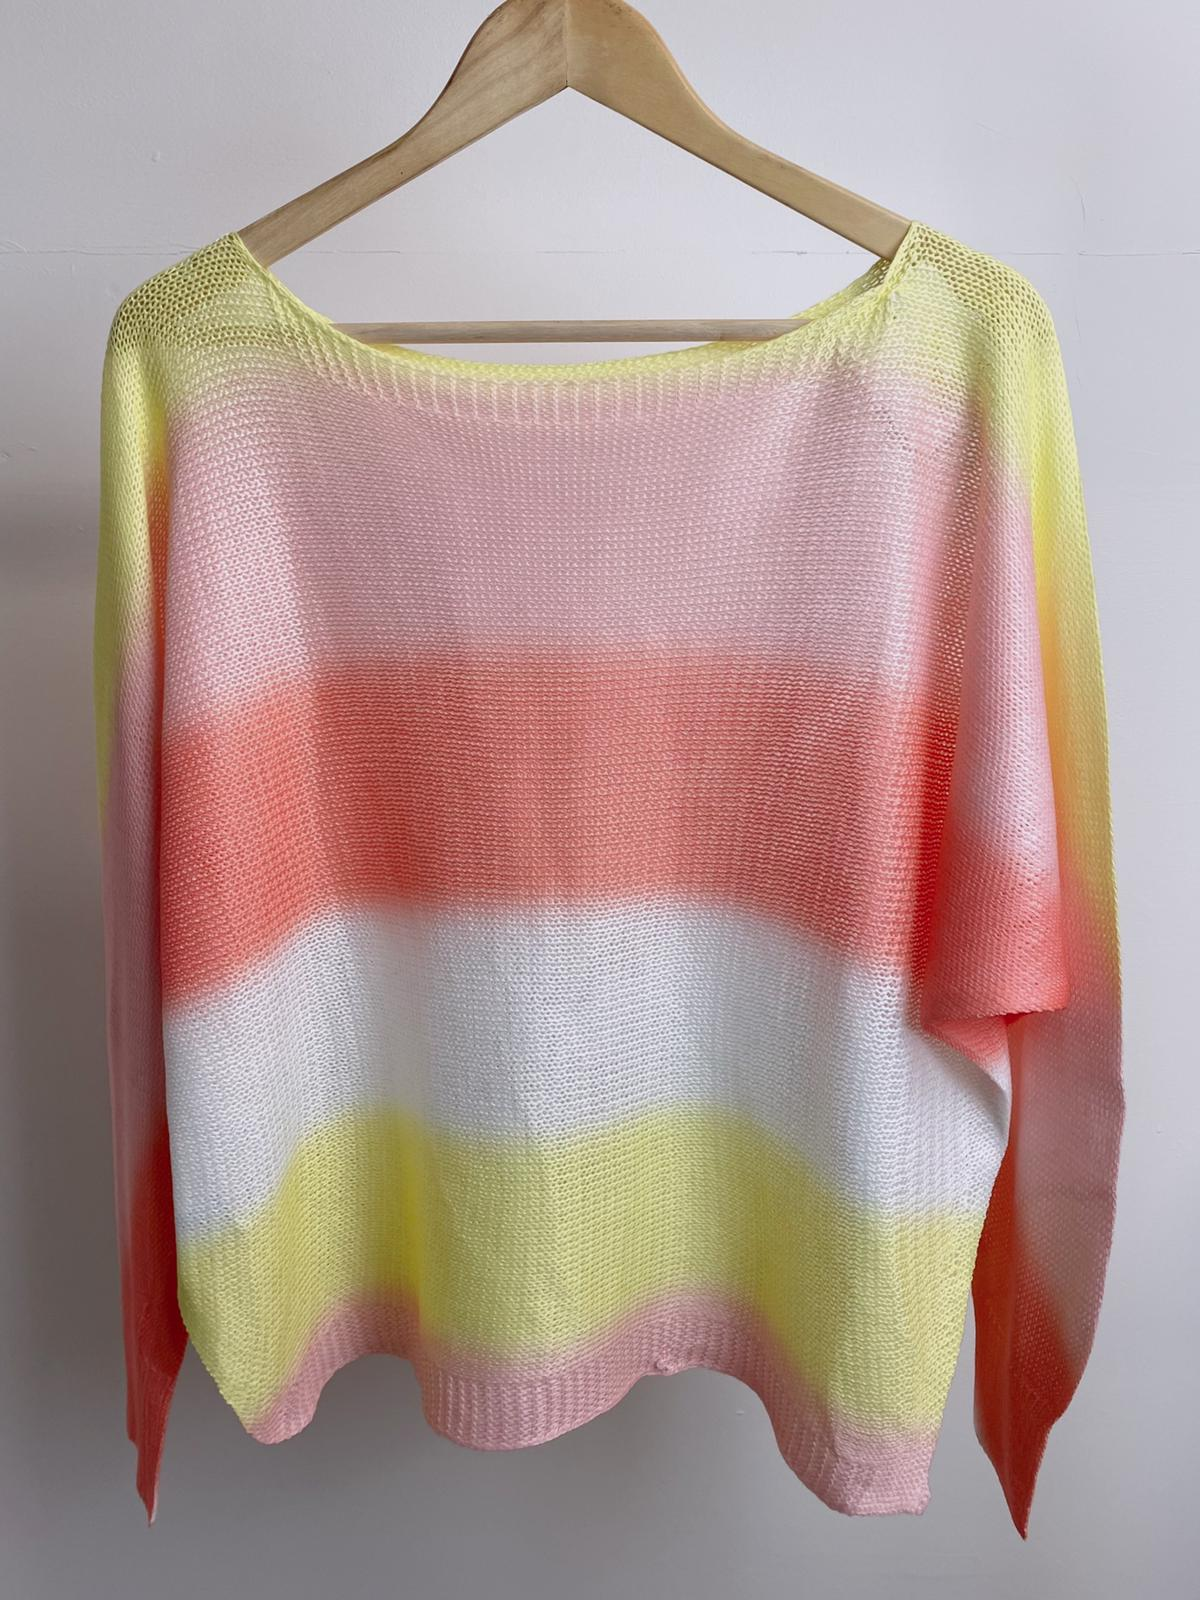 Peggy Batwing Ombre Top (Yellow)